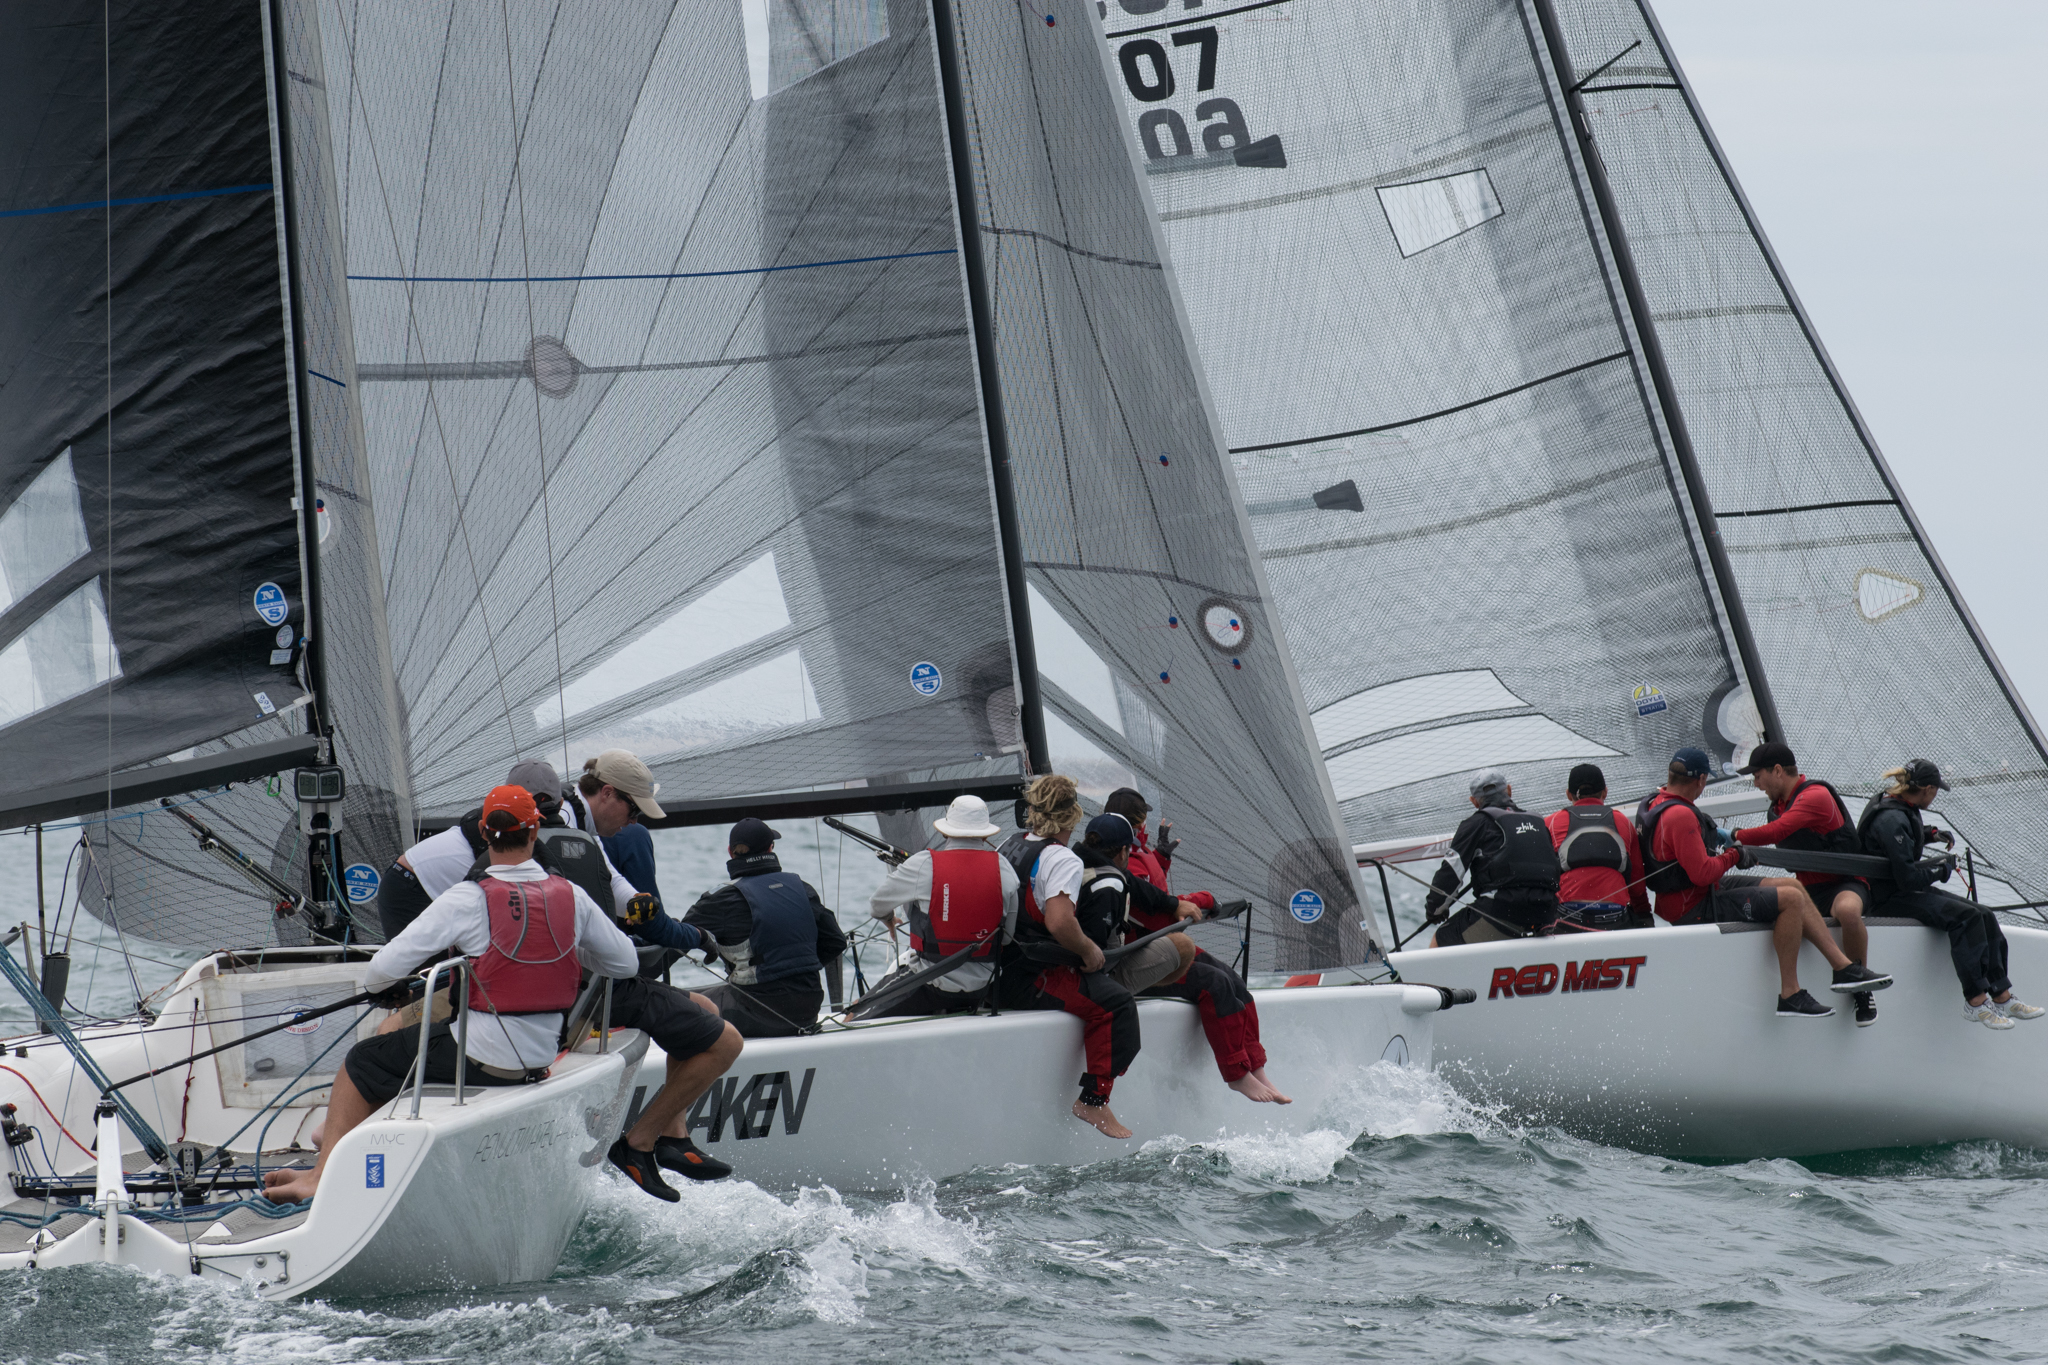 The fleet was tight on the penultimate day of racing. Photo Harry Fisher.